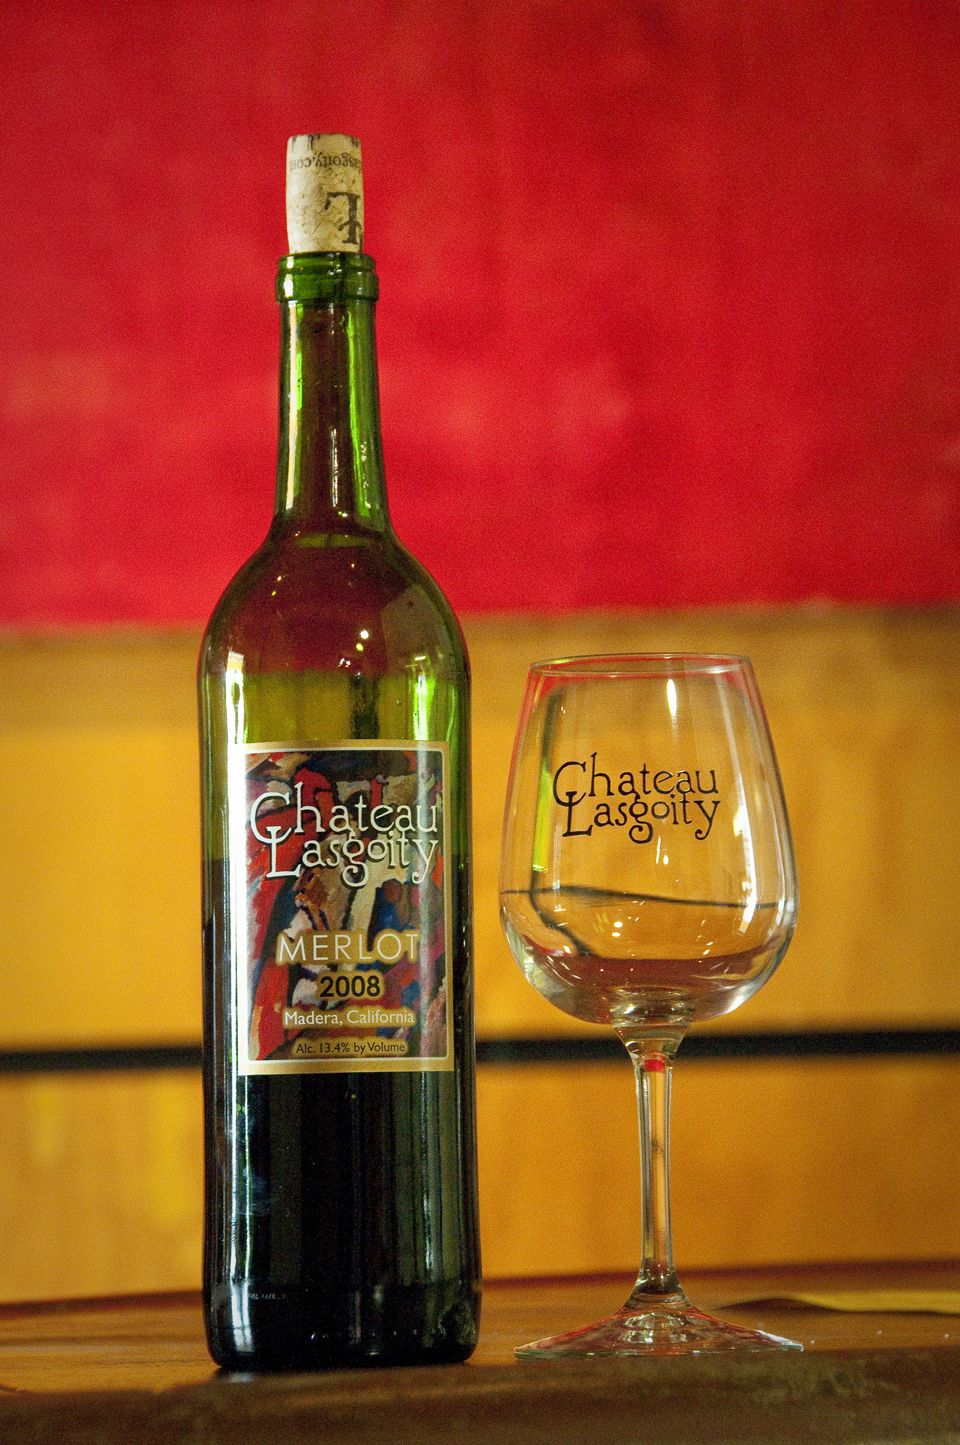 Chateau Lasgoity Madera Small Boutique Winery Wine Trail Wine Country California Madera County